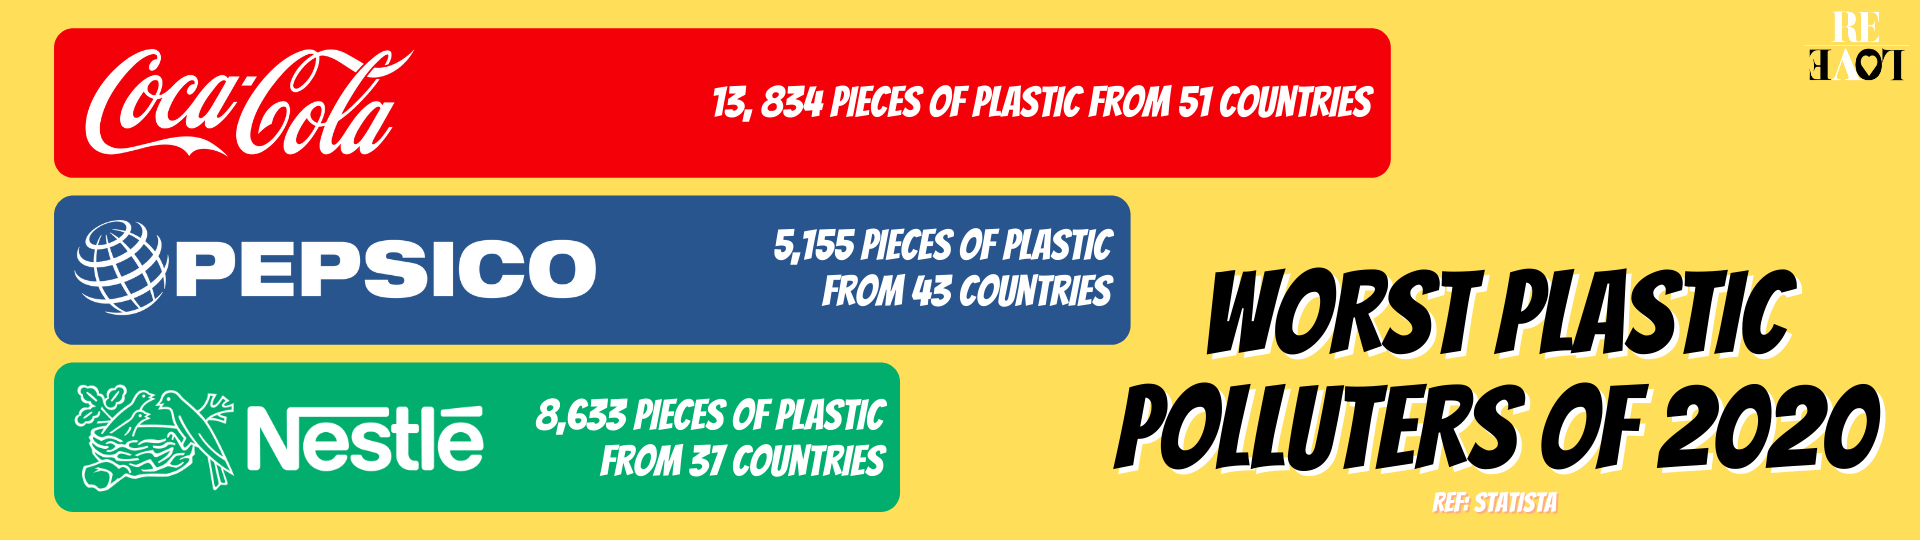 Chart showing the worlds worst plastic polluters, including Coca-Cola.